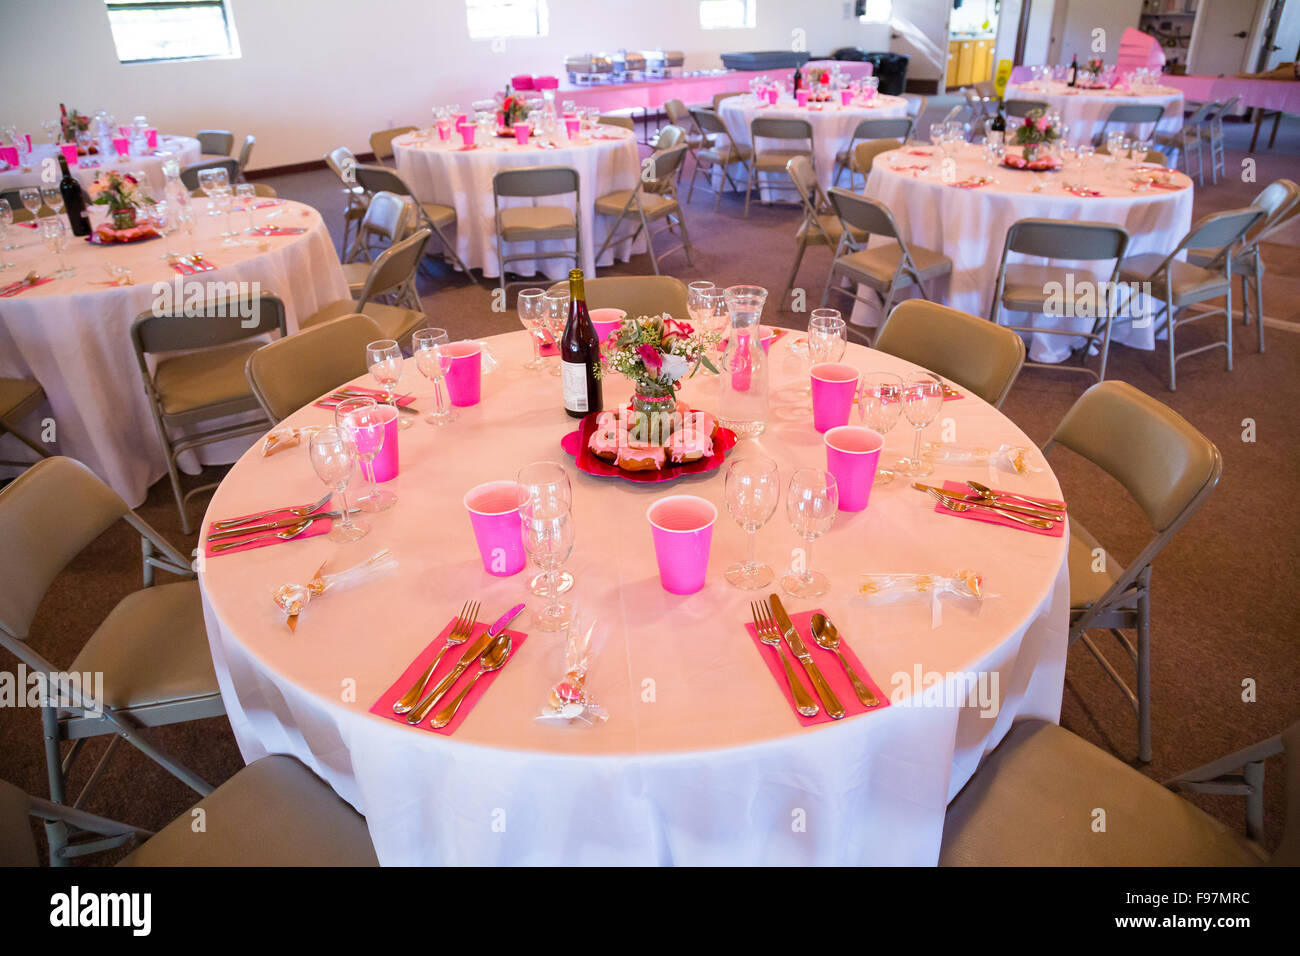 Details at a wedding reception include pink decor and donuts Stock ...